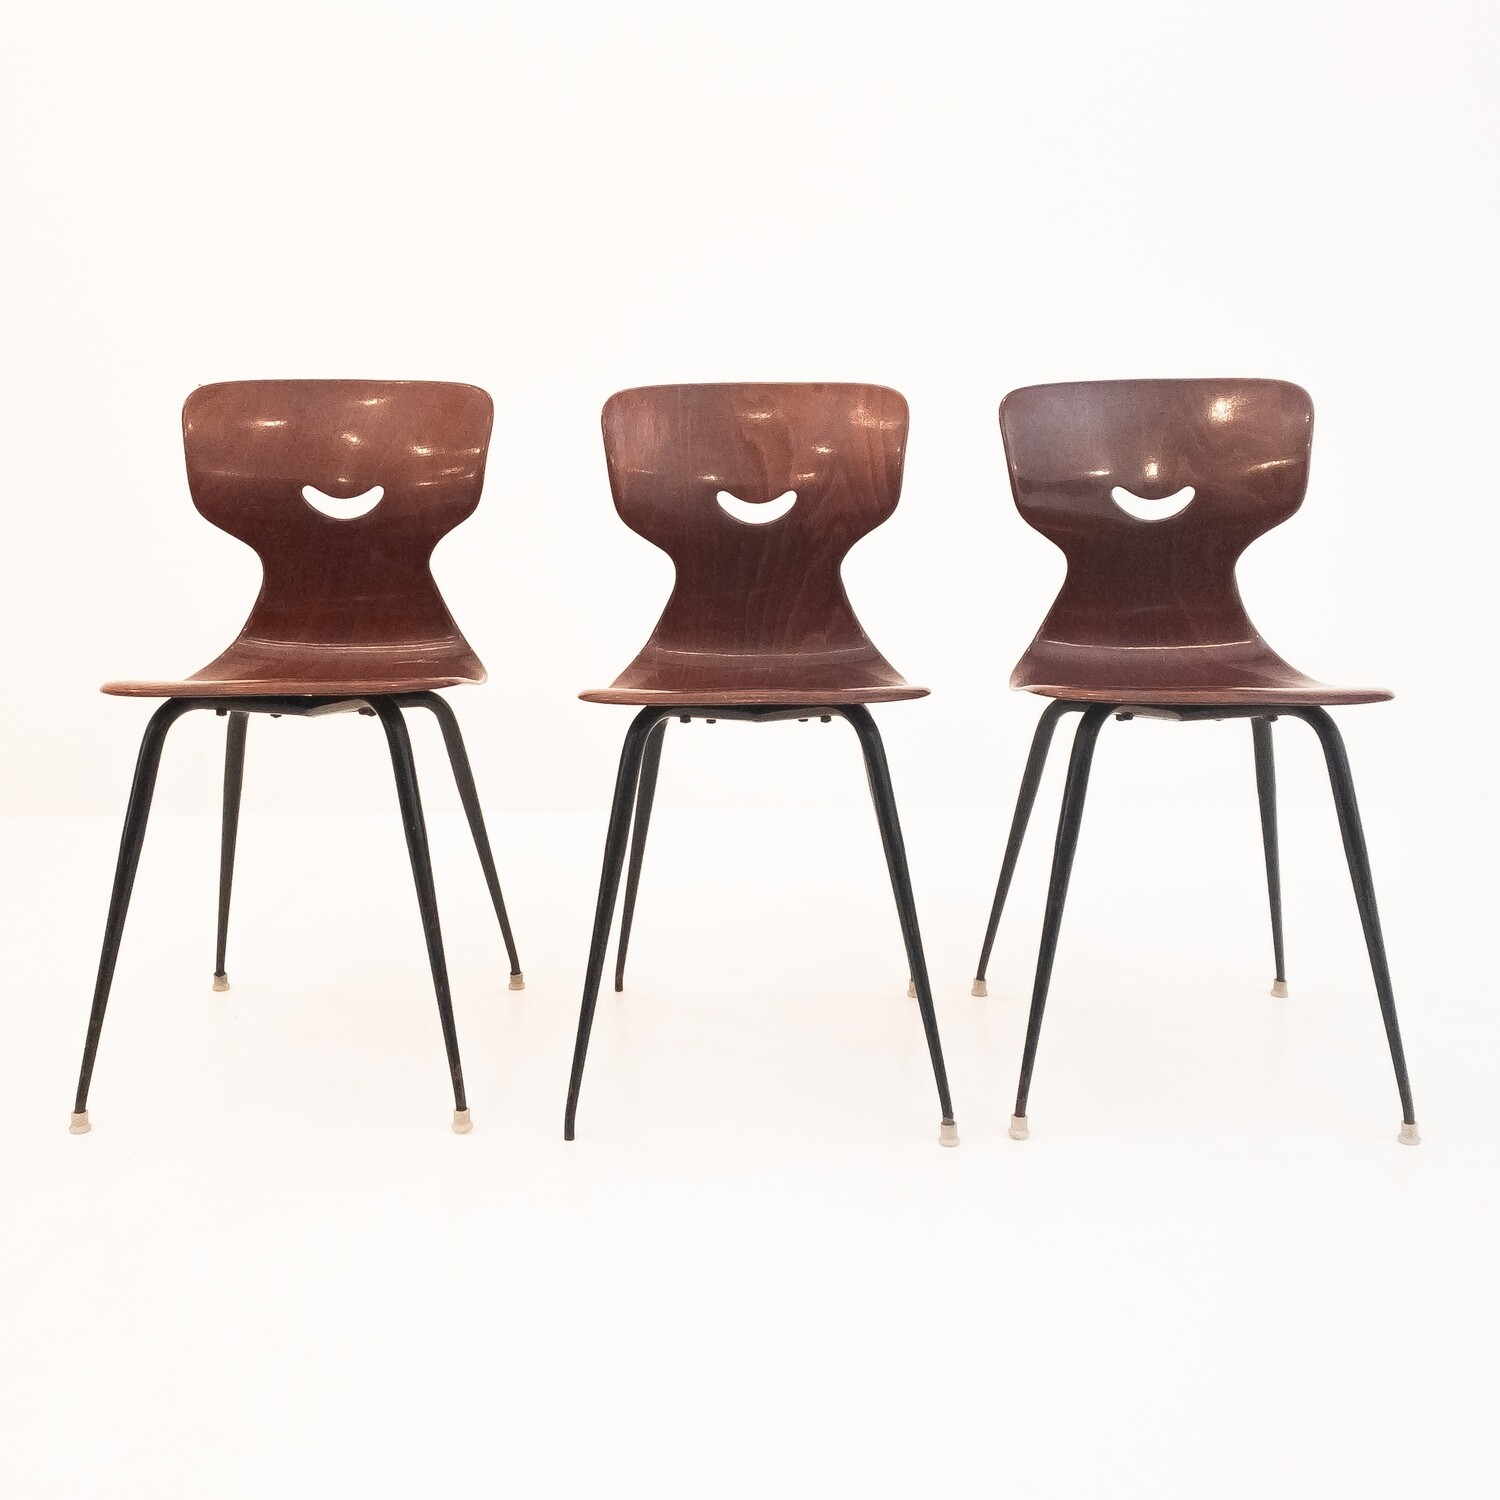 Set of 3 Pagholz chairs